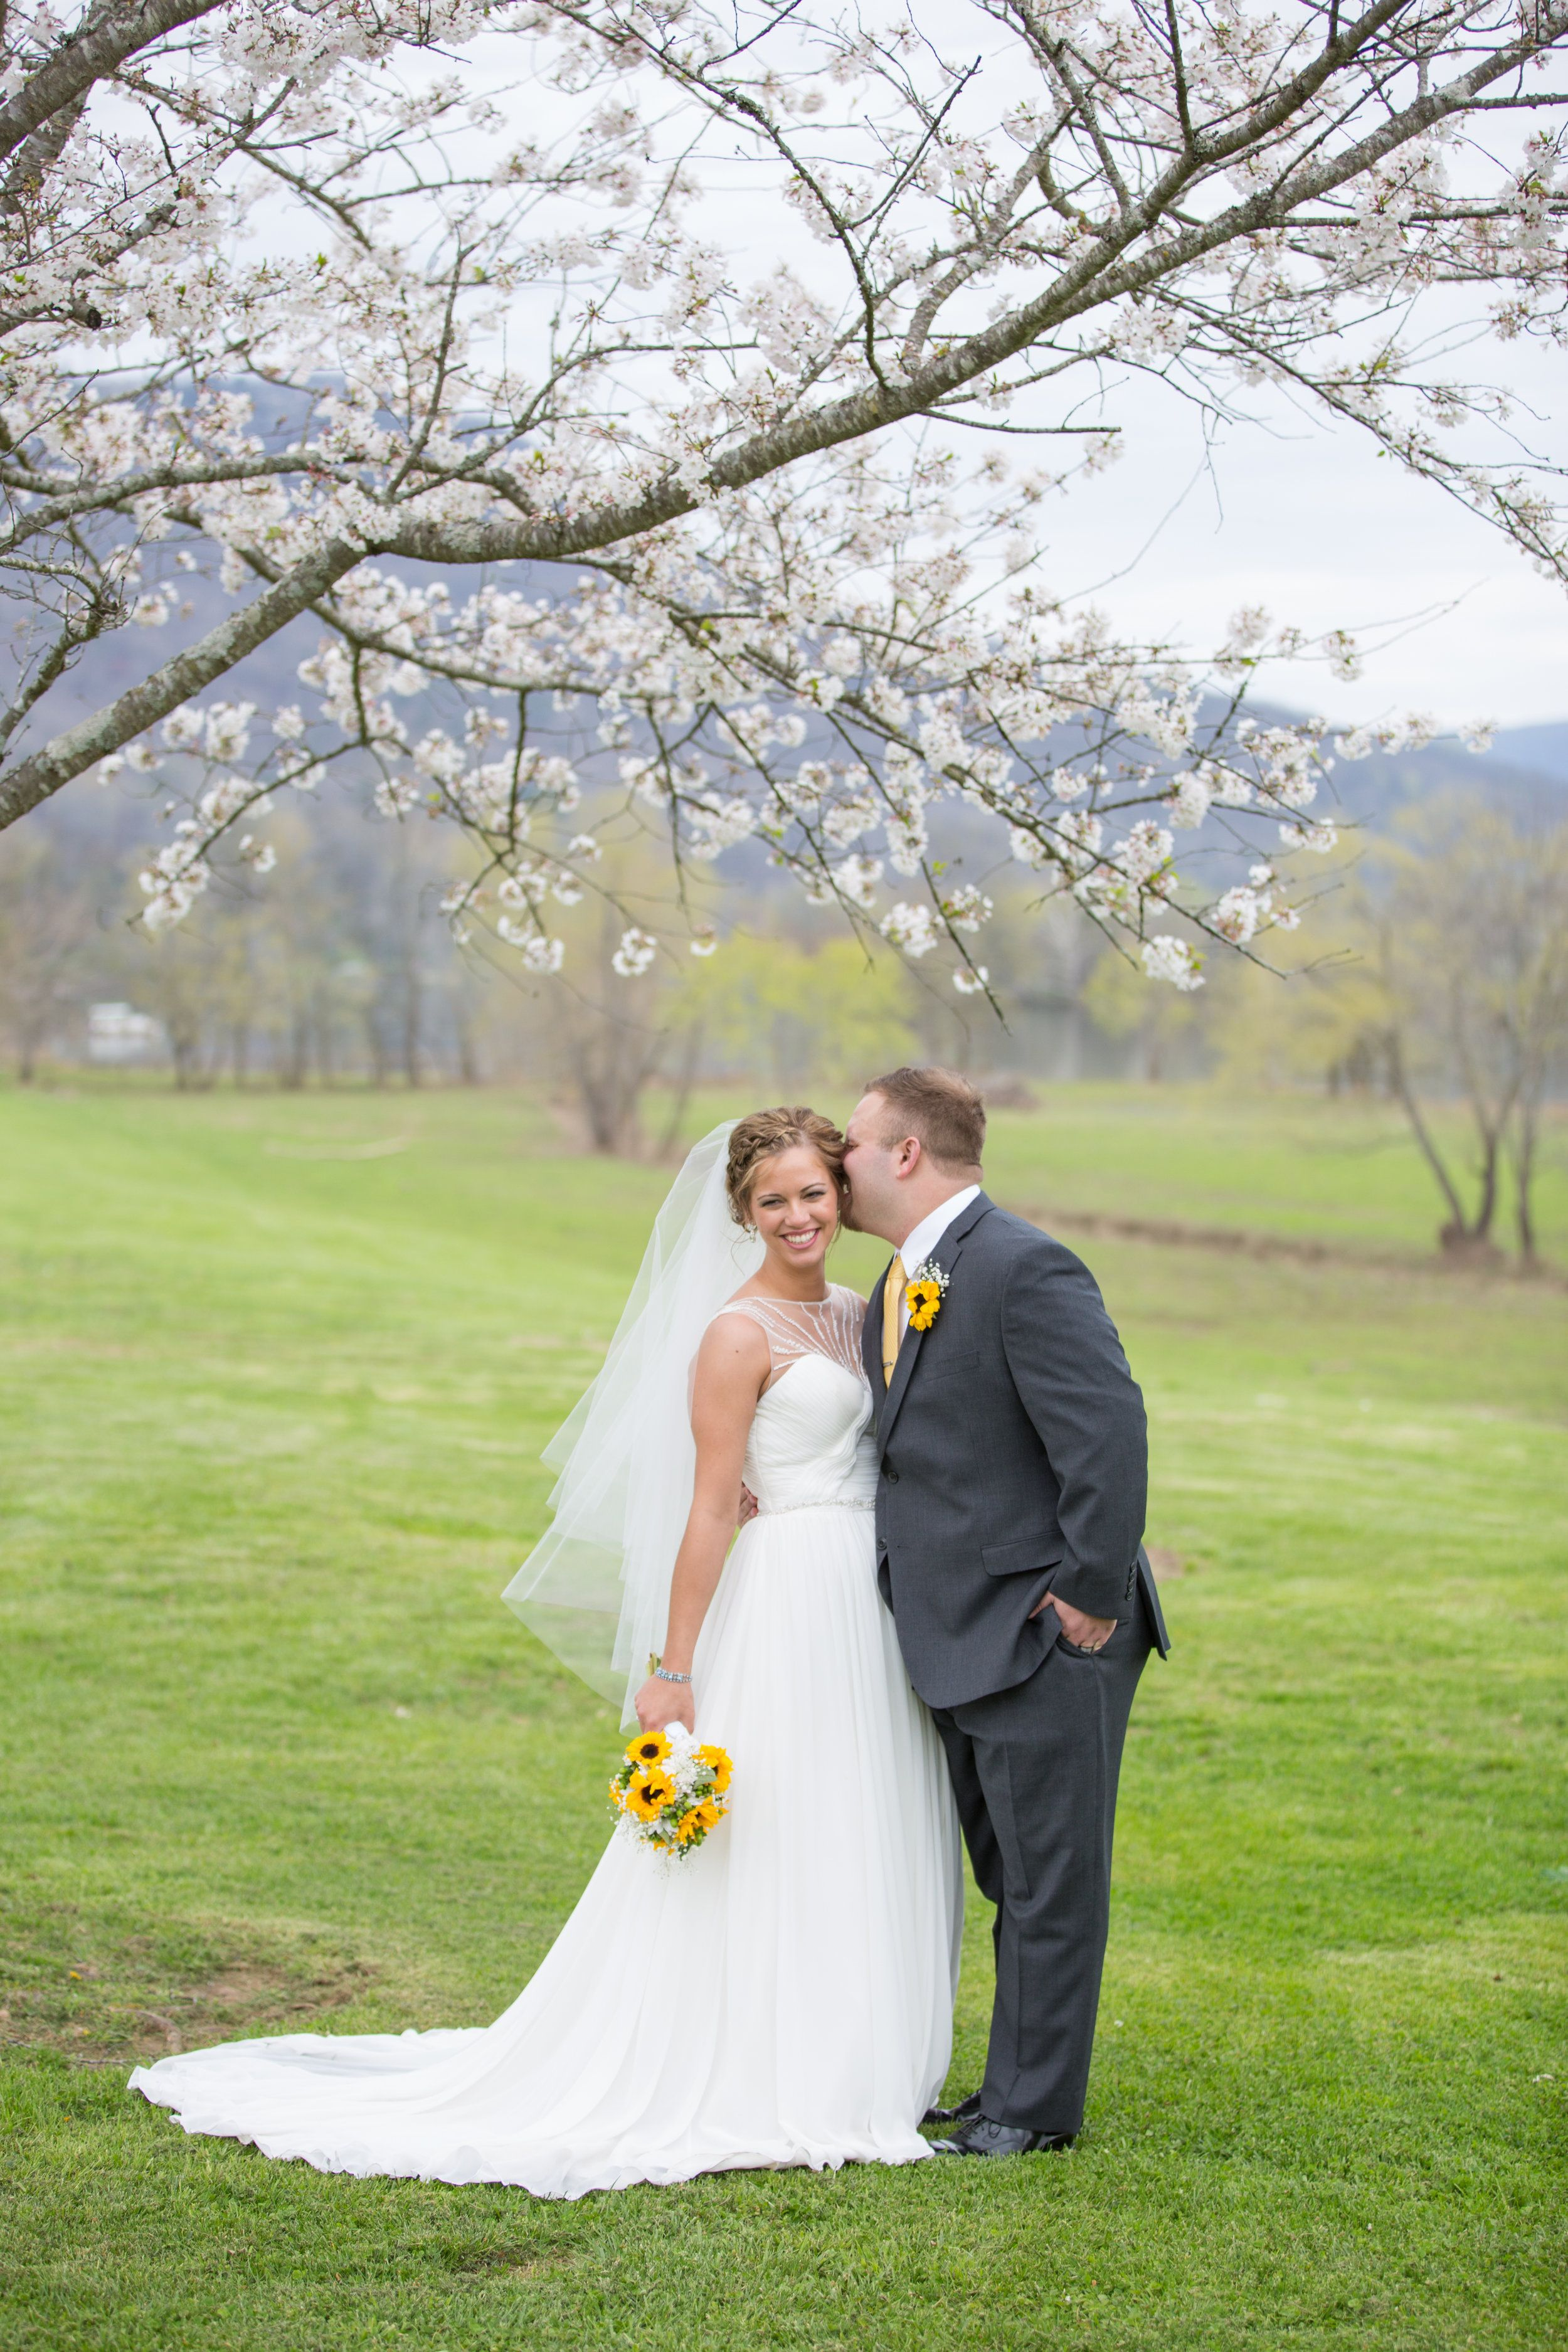 A Simple, Romantic Wedding at Tennessee RiverPlace in